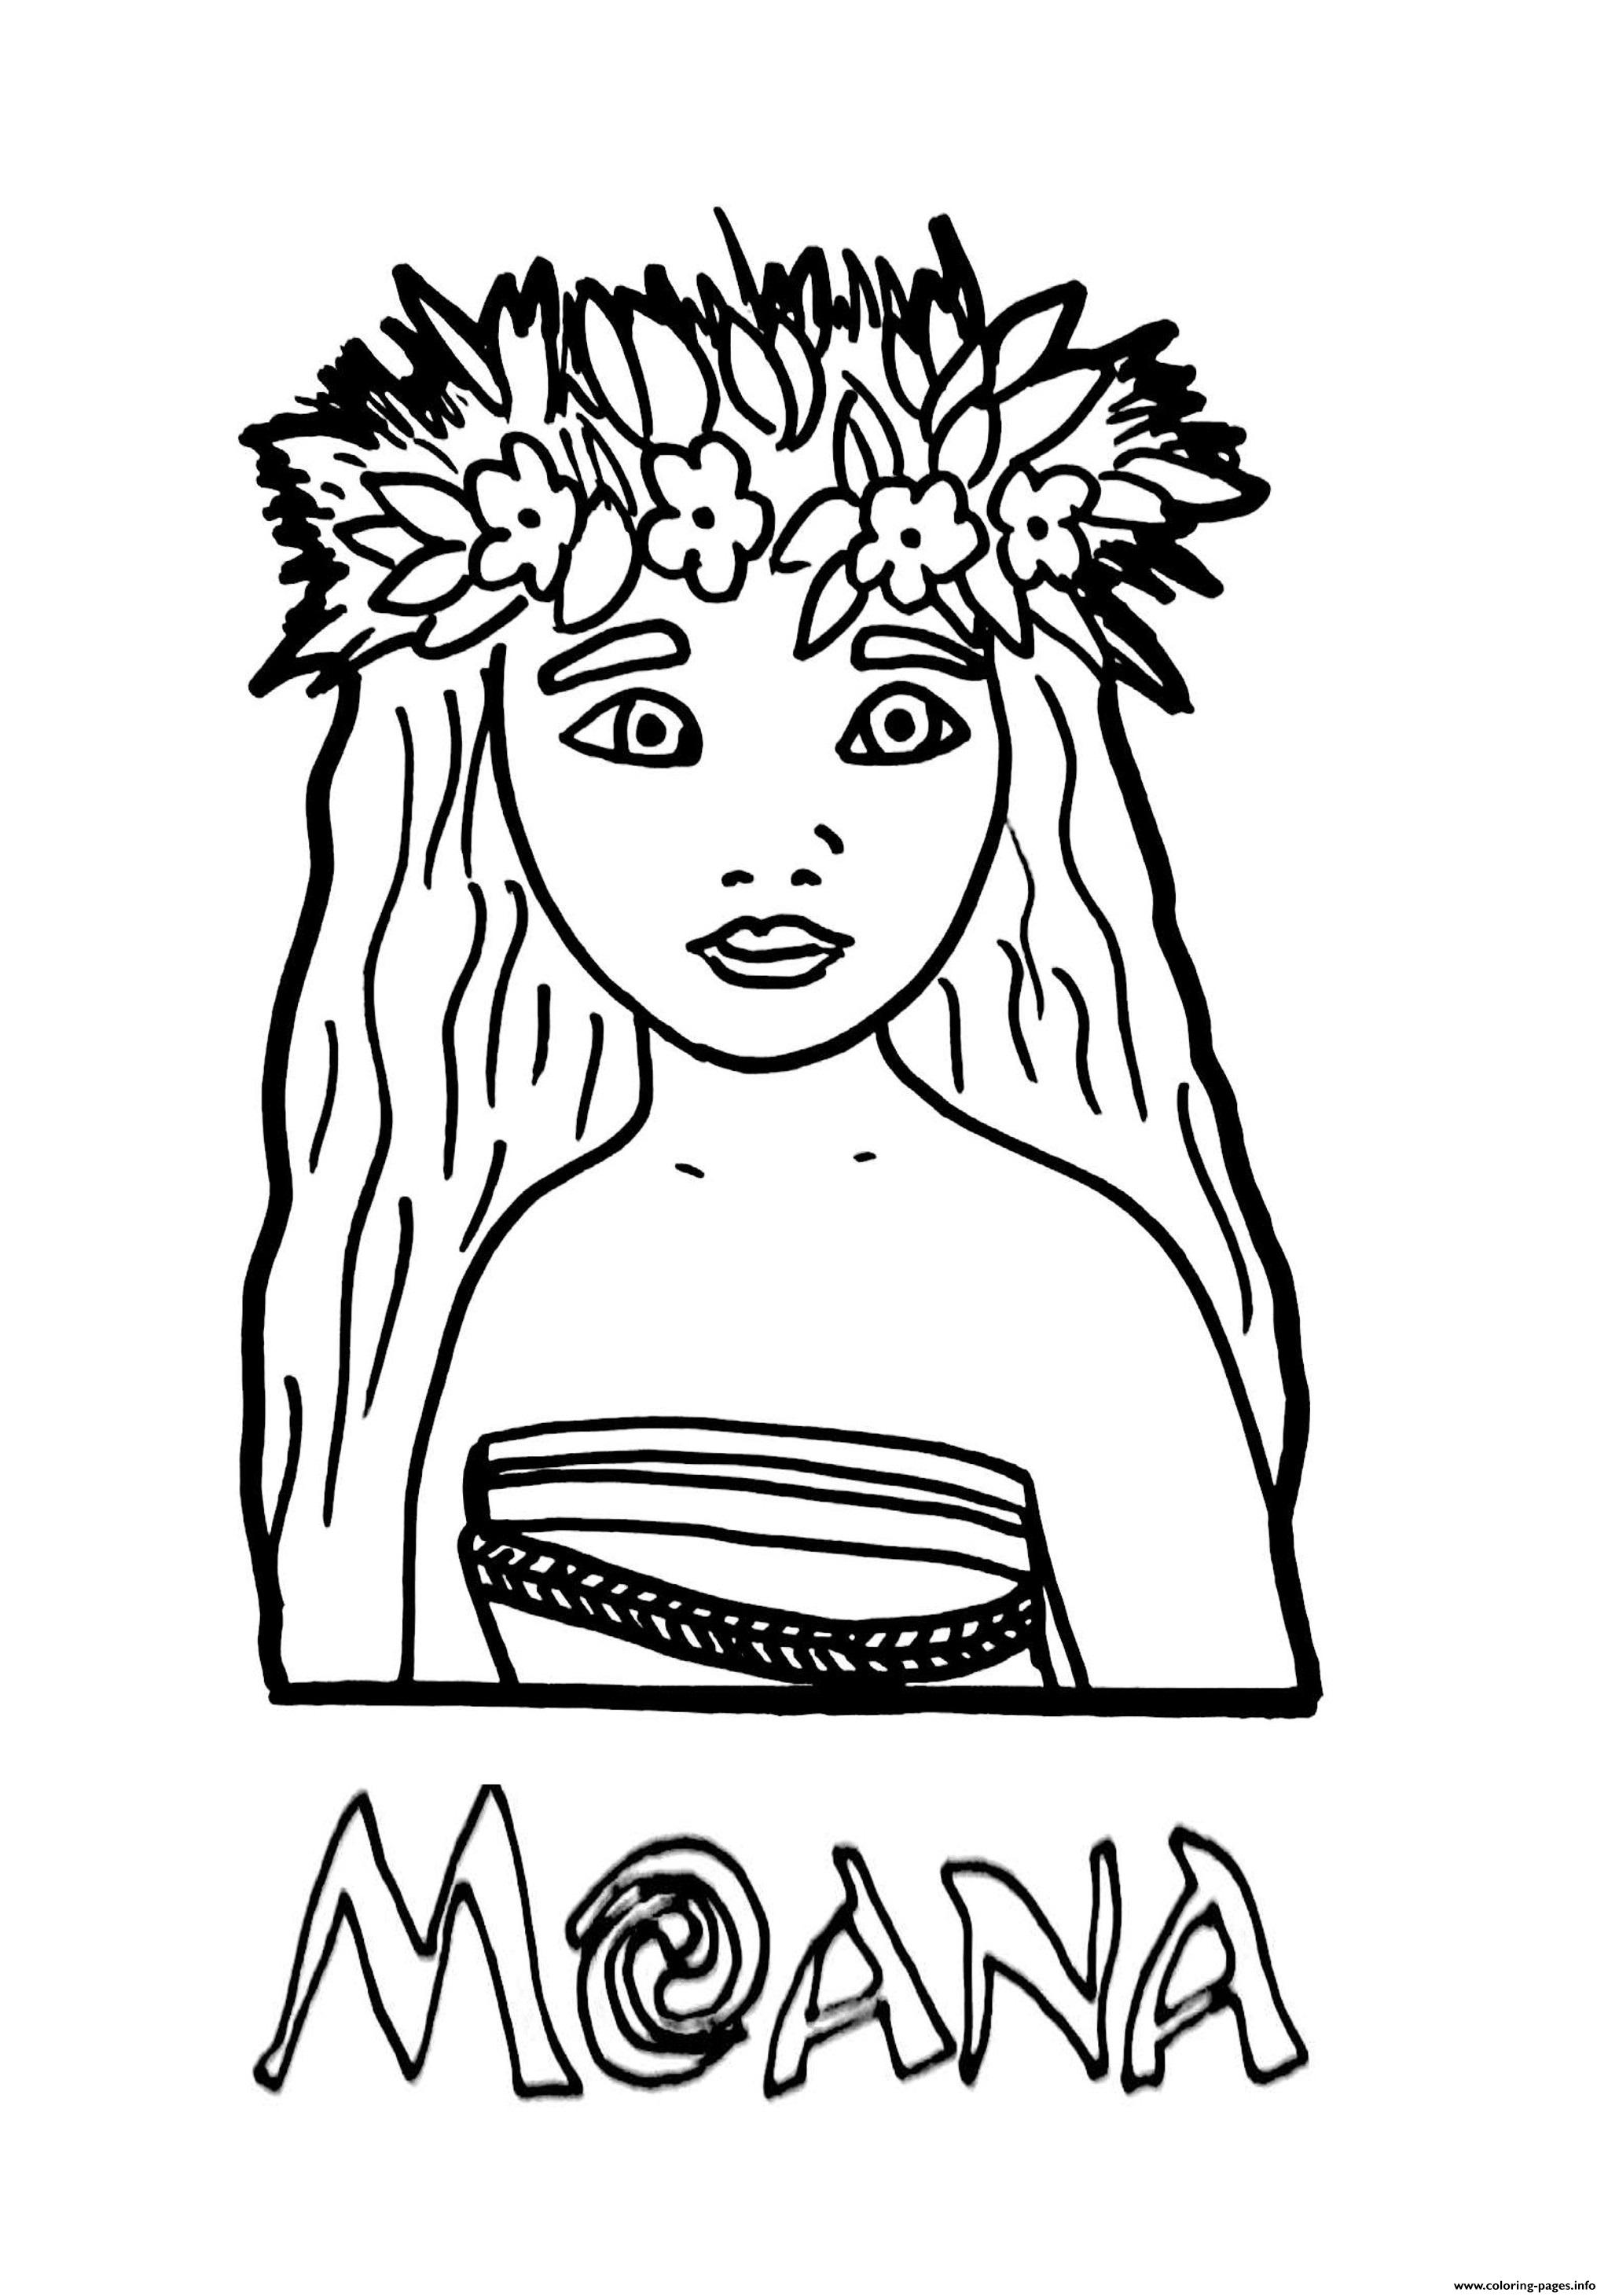 coloring pages for girls moana coloring pages for girls moana girls coloring pages for moana